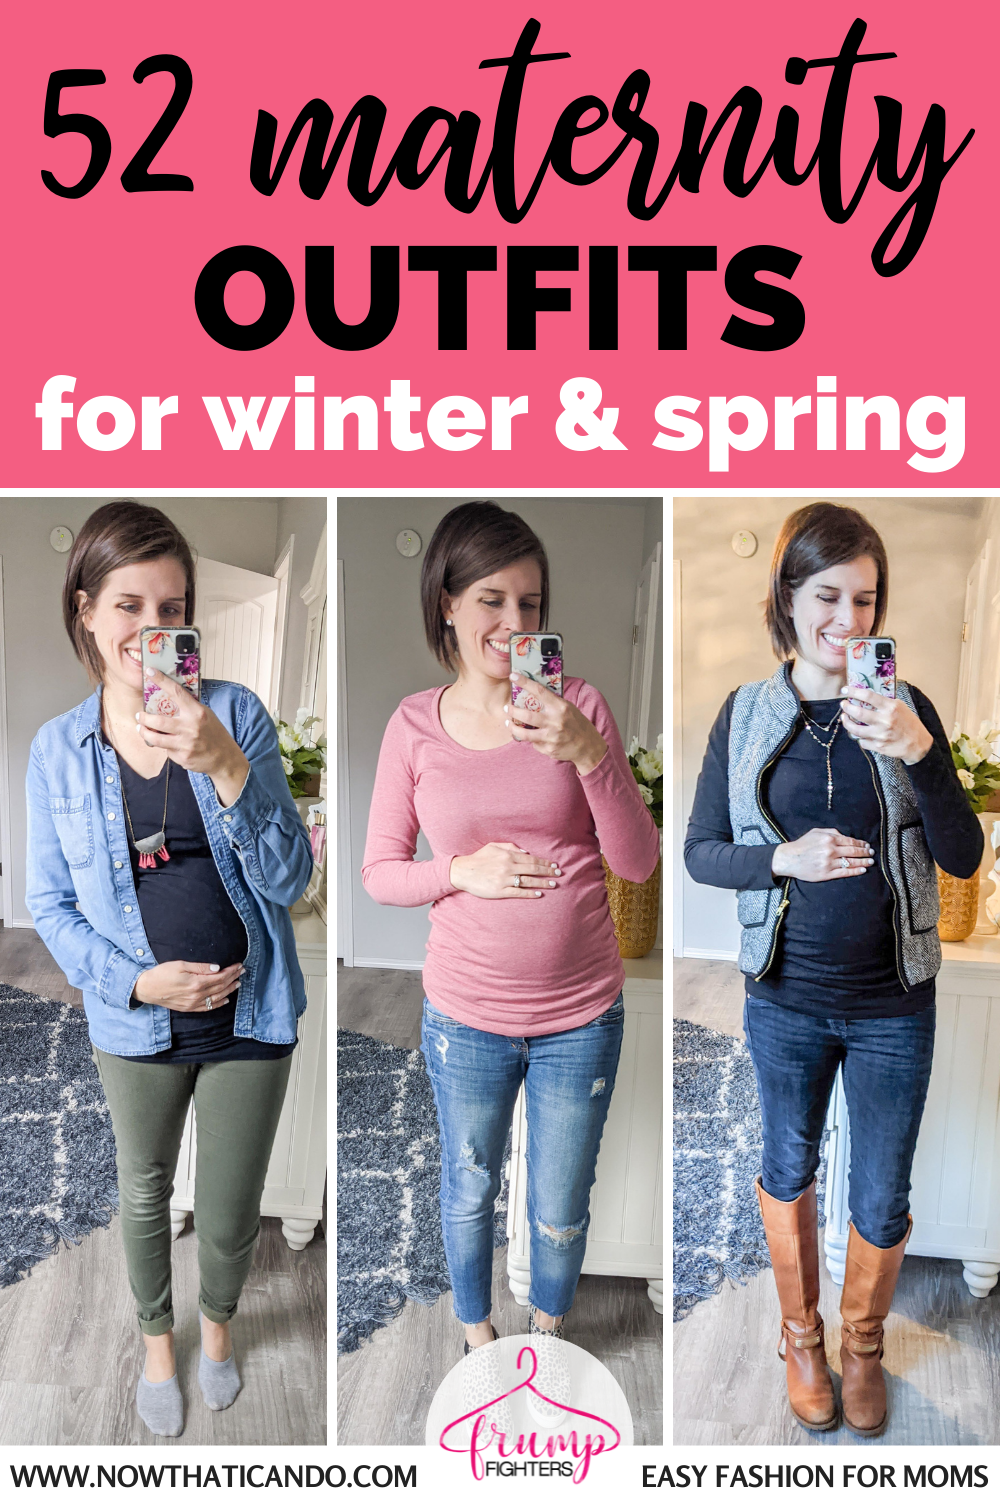 52 Pregnancy Outfits for Winter & Spring: How I Used My Maternity Capsule Wardrobe